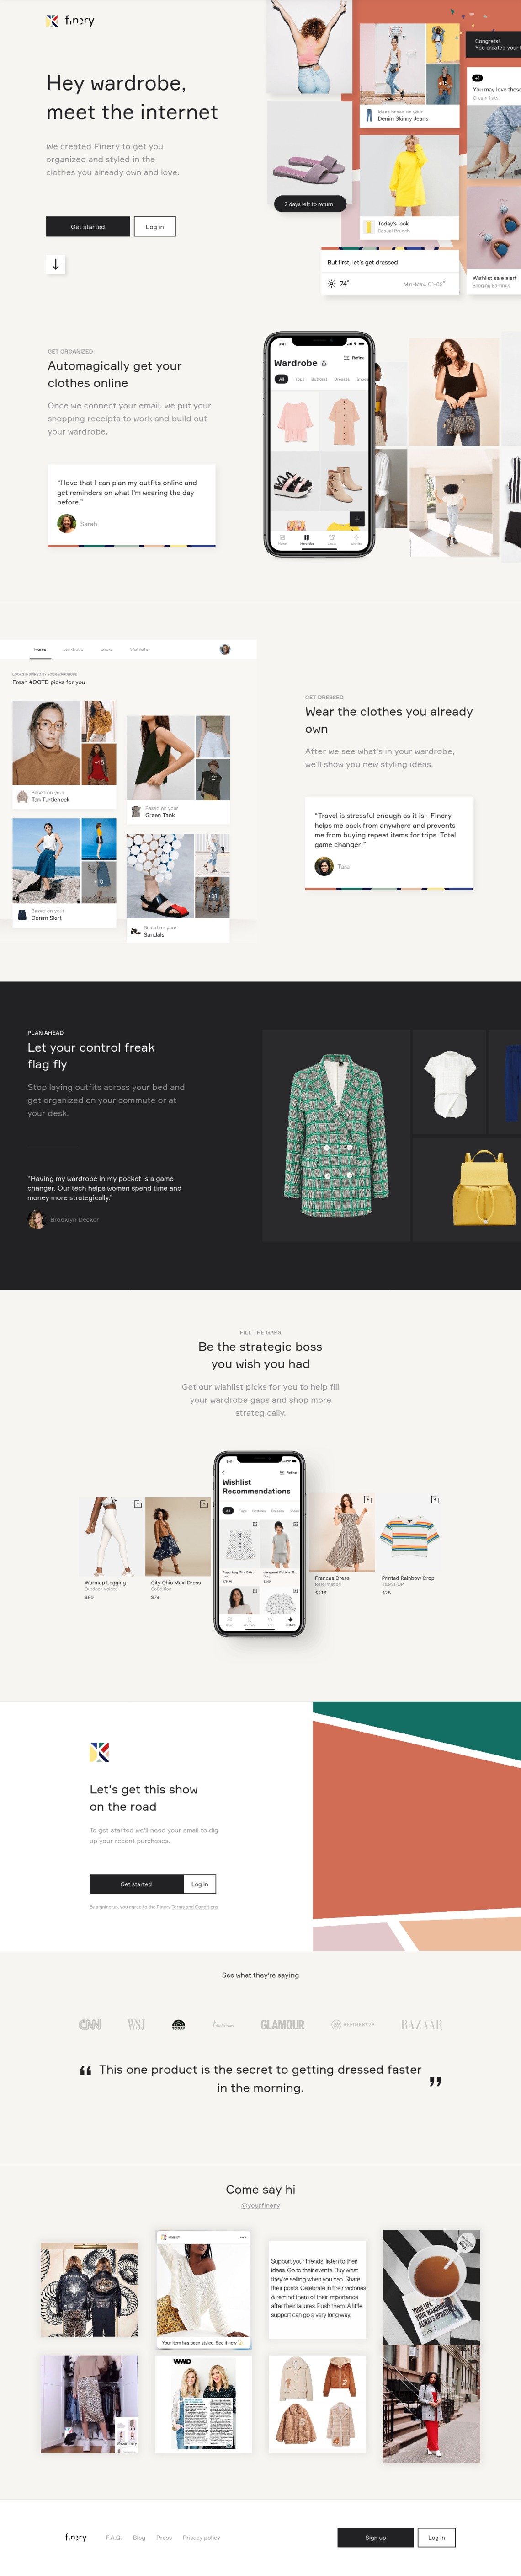 Finery: The Wardrobe Operating System™